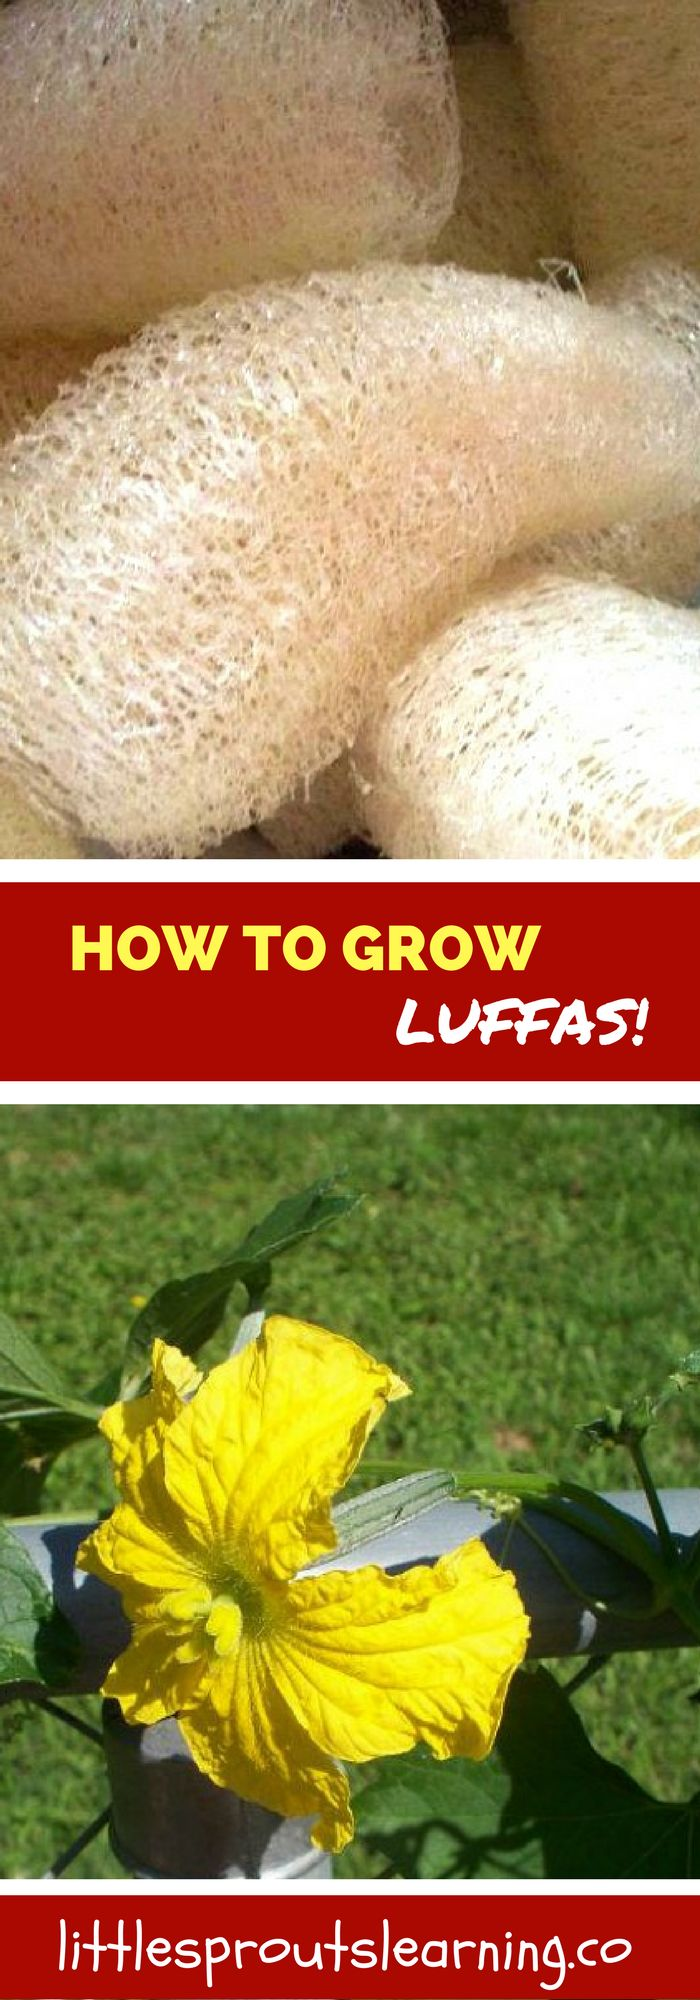 Did you know you can grow luffa gourd sponges in your home garden? It's easy and fun!